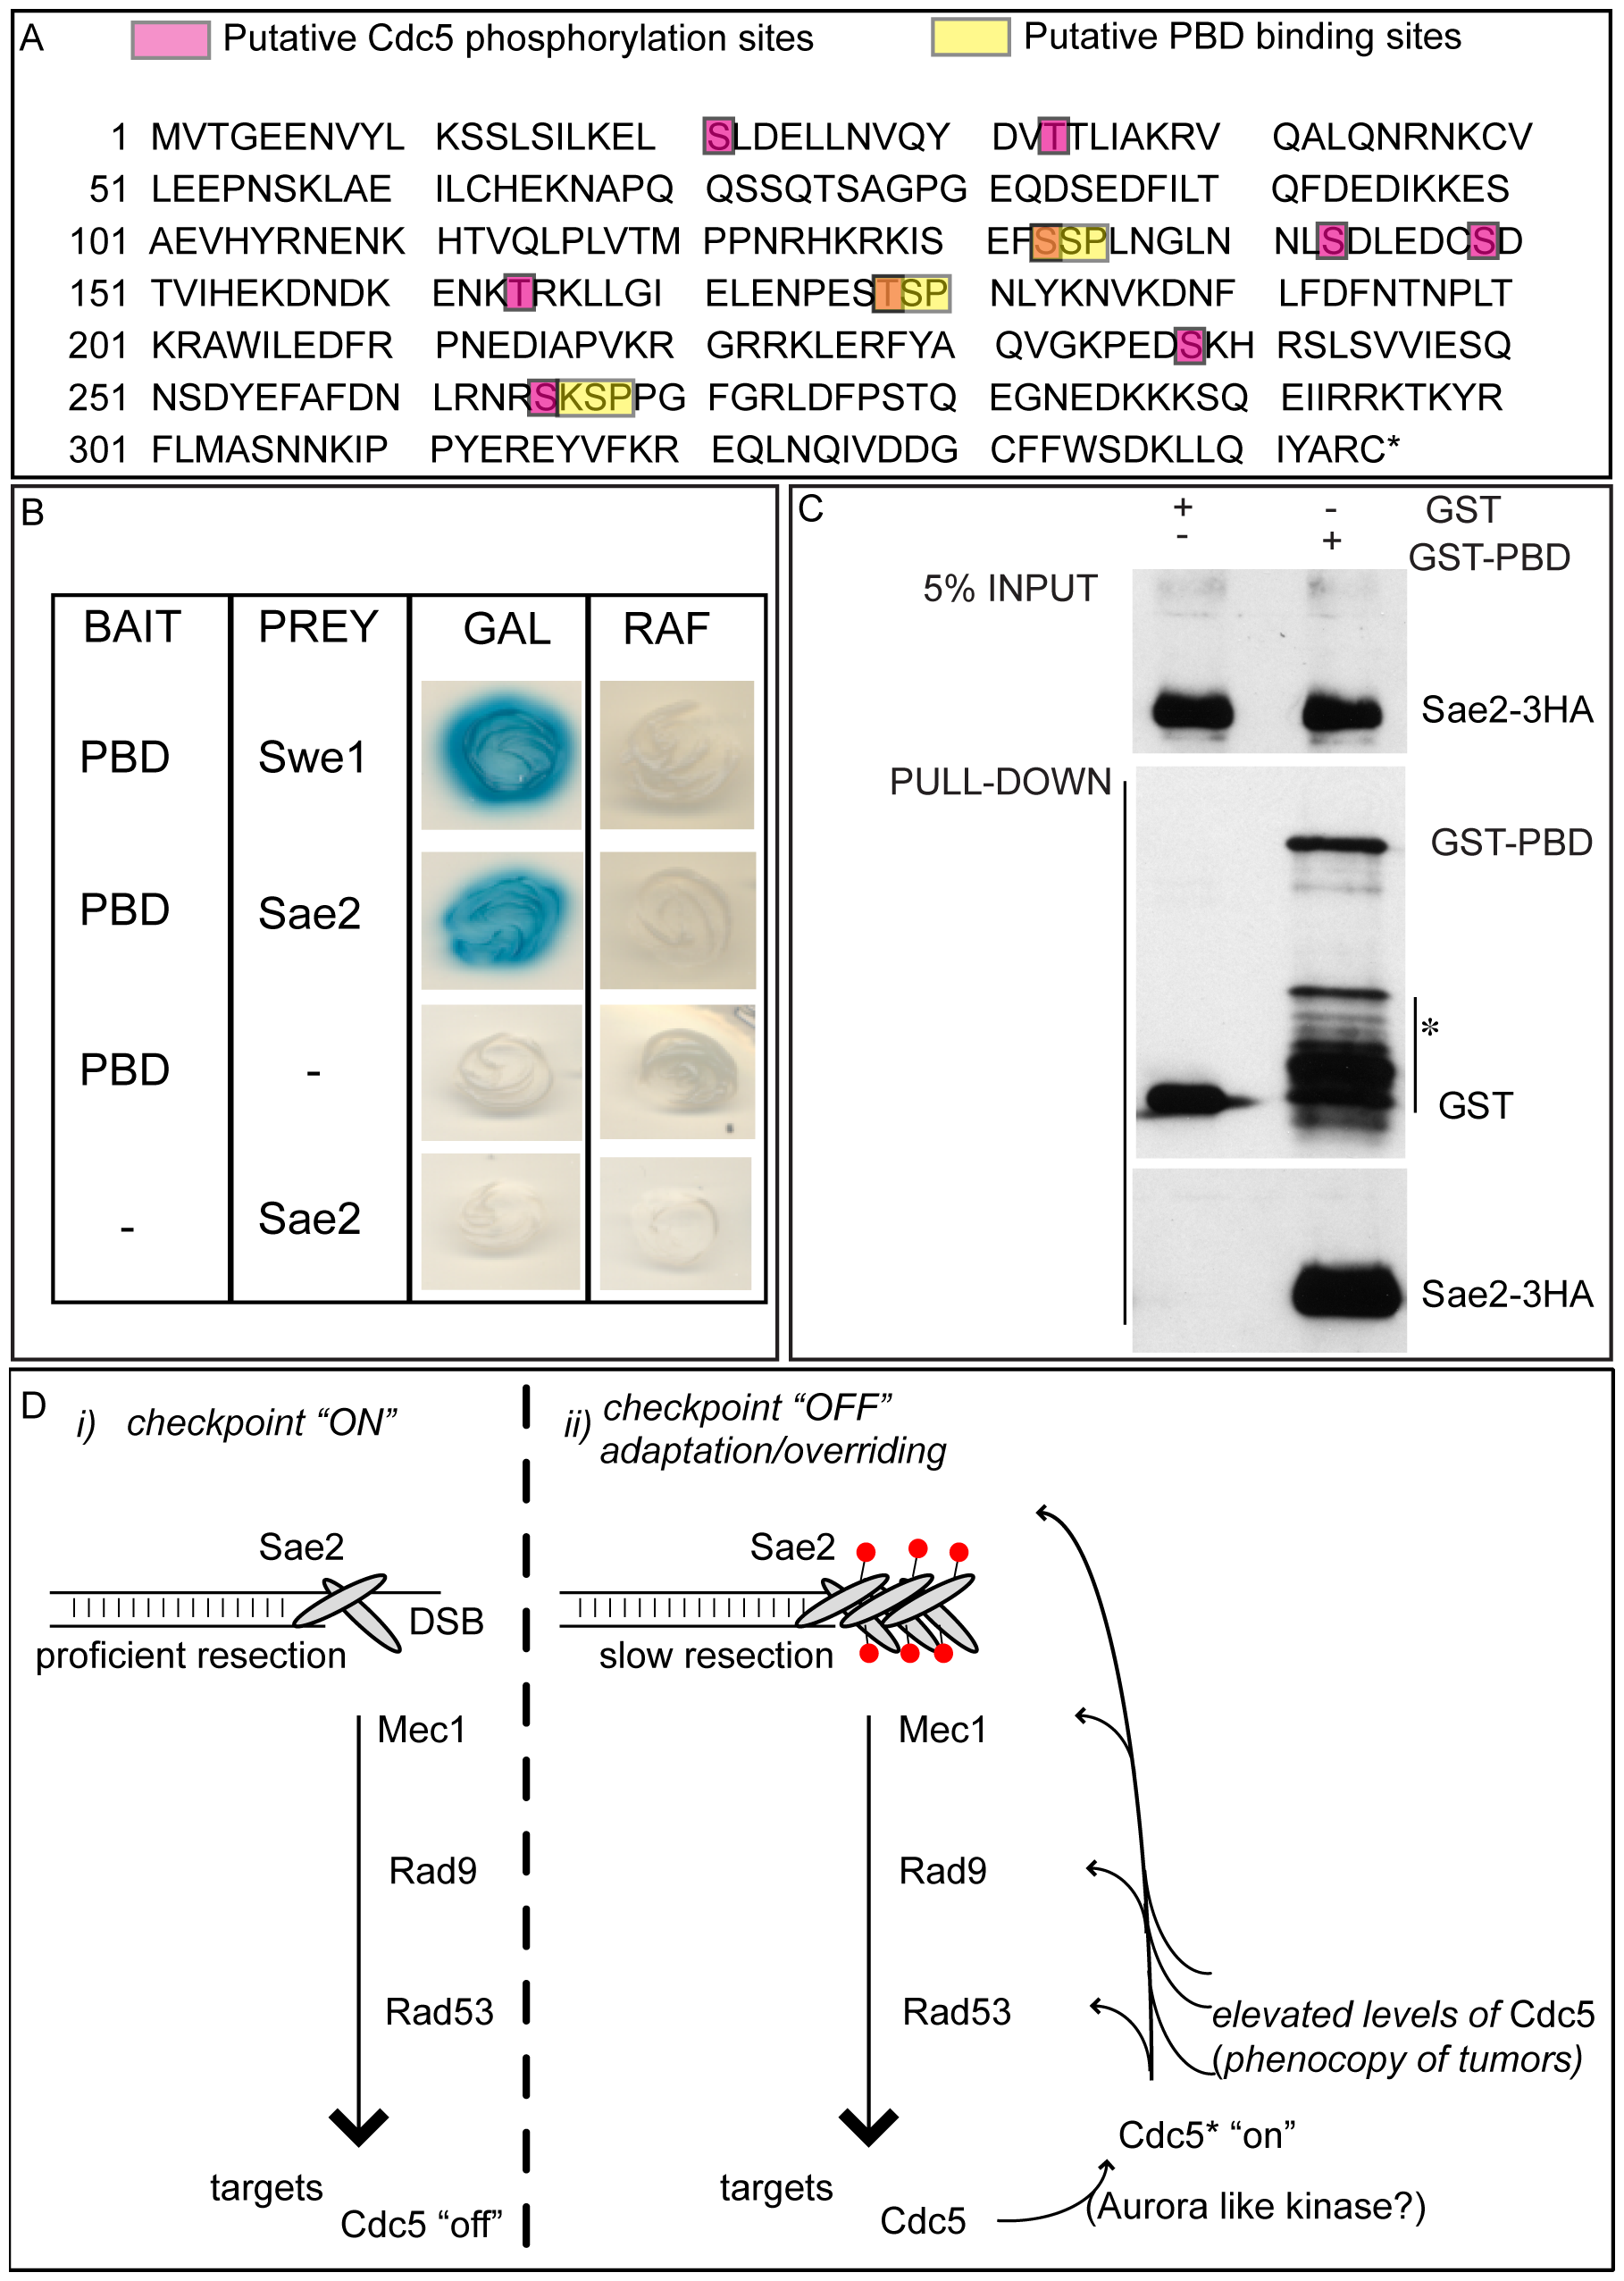 Sae2 protein interacts with PBD of Cdc5.